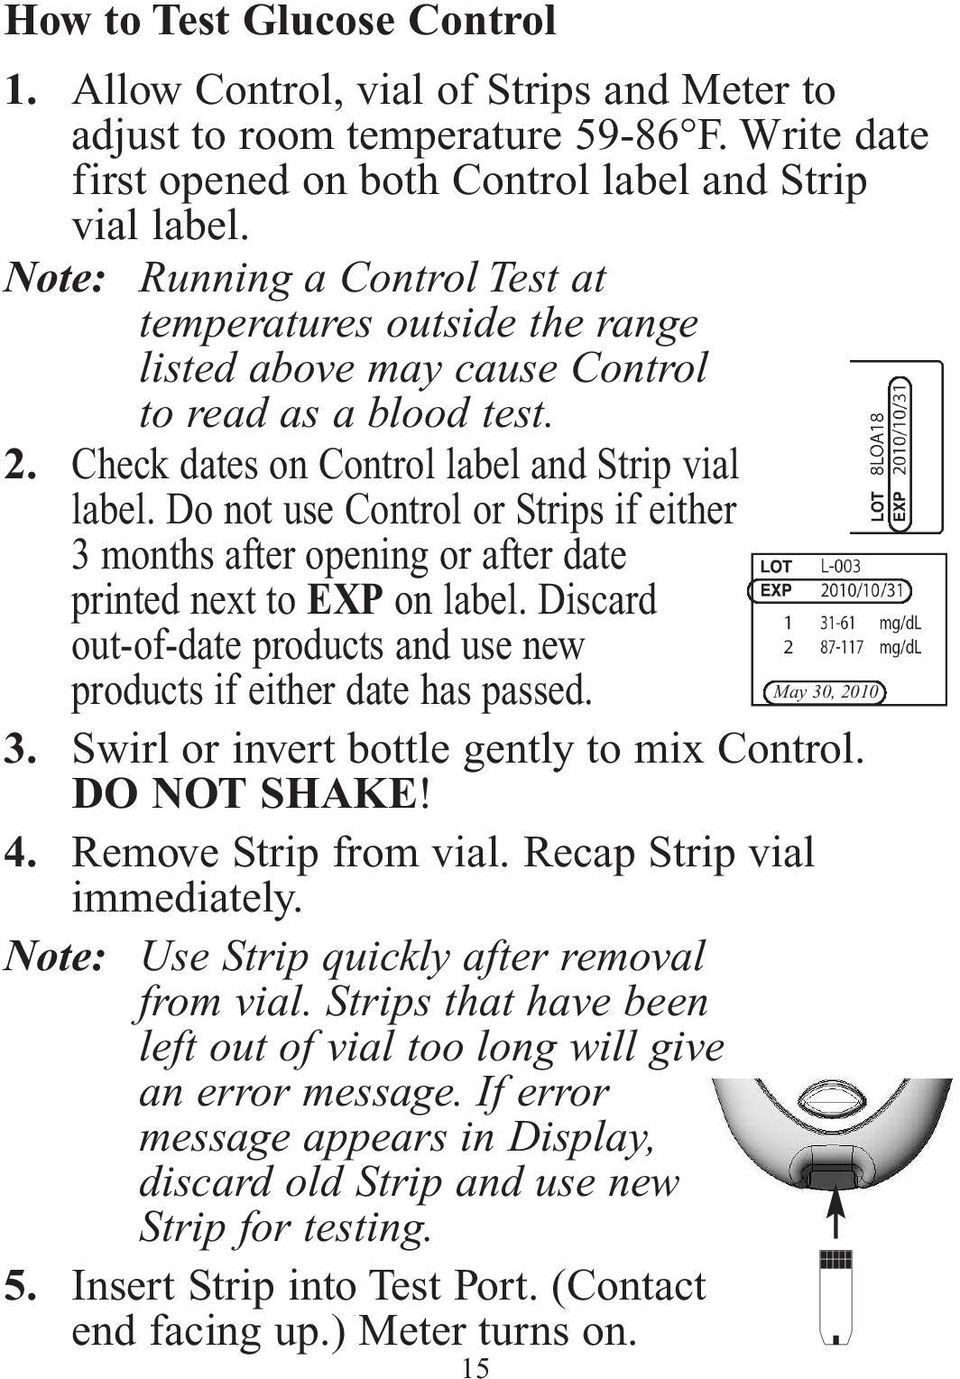 Do not use Control or Strips if either 3 months after opening or after date printed next to EXP on label. Discard out-of-date products and use new products if either date has passed. May 30, 2010 3.